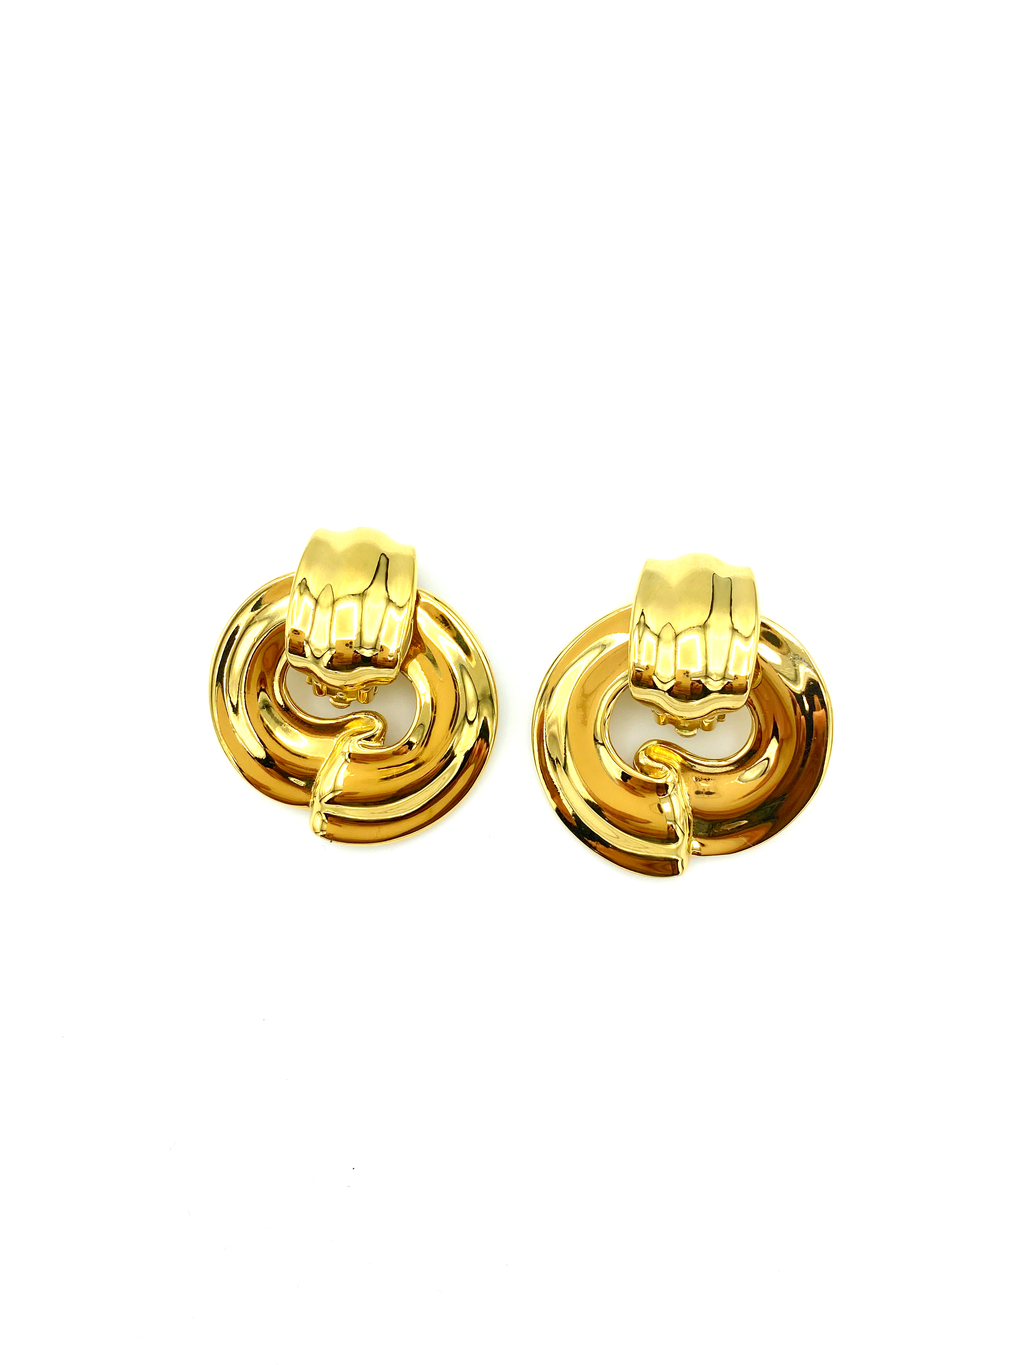 Givenchy Gold Statement Door Knocker Vintage Earrings-Sustainable Fashion with Vintage Style-Trending Designer Fashion-24 Wishes